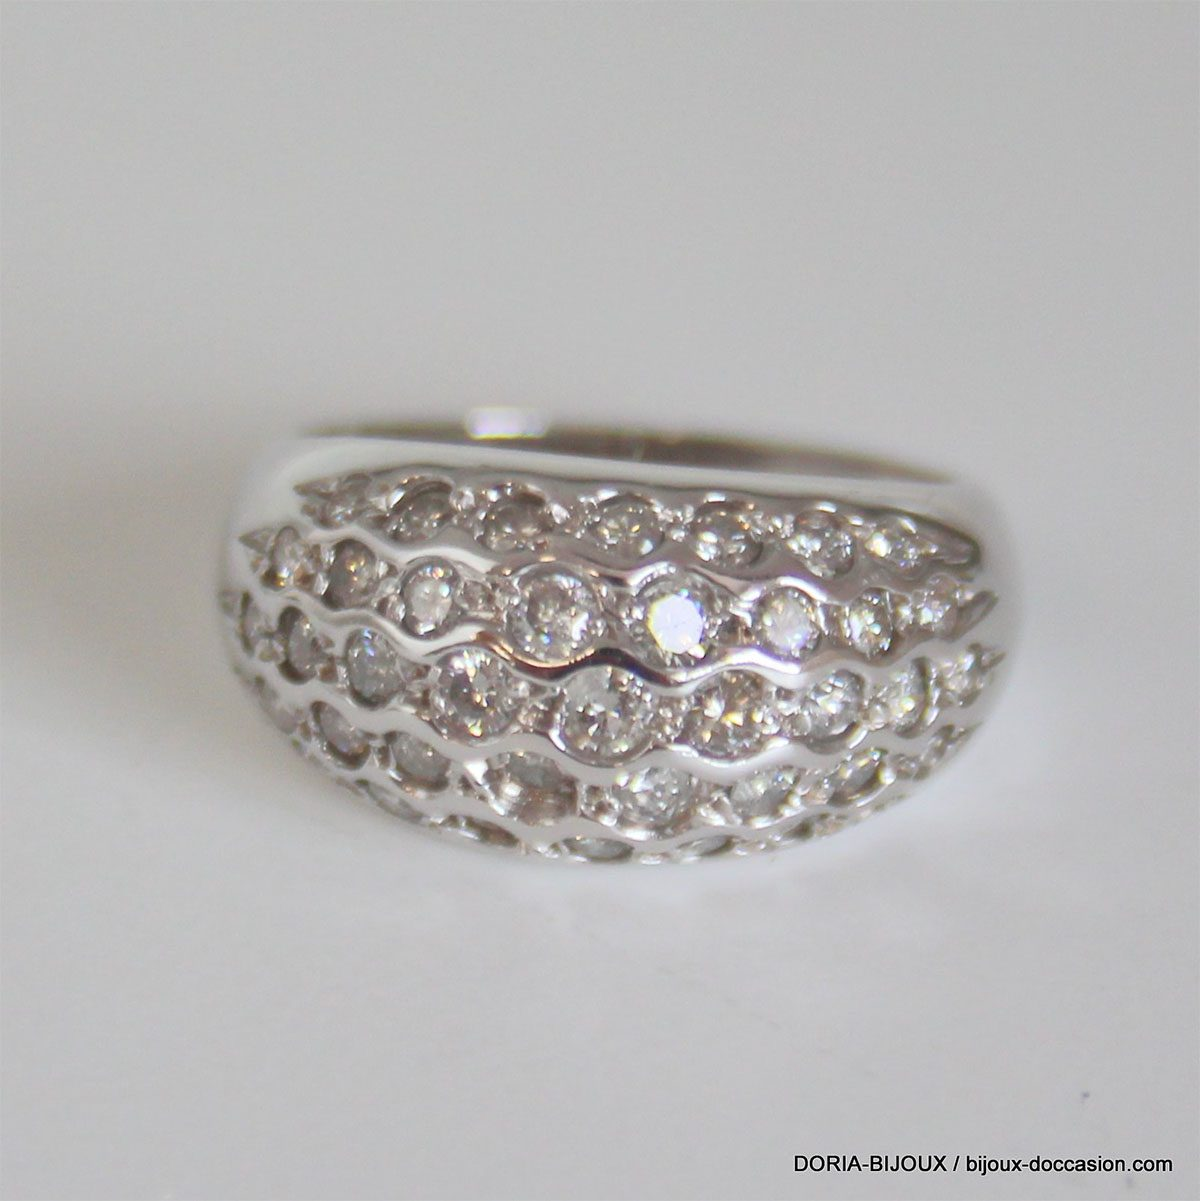 Bague Or Gris 18k 750 Pavage Diamants -5.90grs - 54